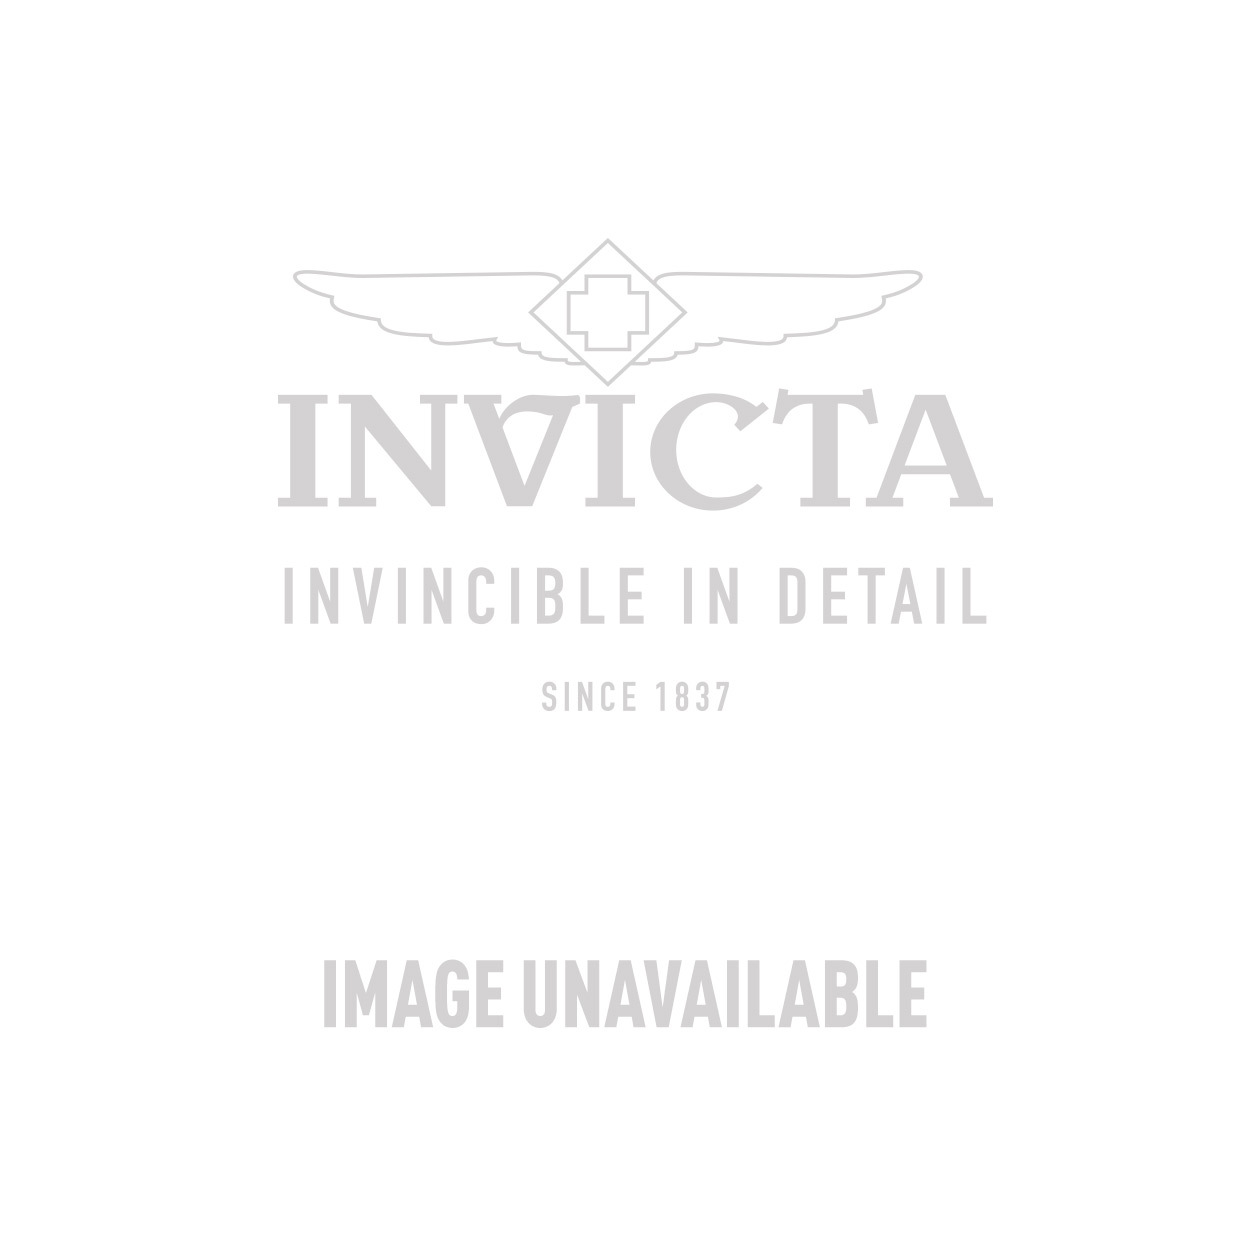 Invicta Excursion Swiss Made Quartz Watch - Gold case with Gold, Black tone Stainless Steel, Polyurethane band - Model 90058